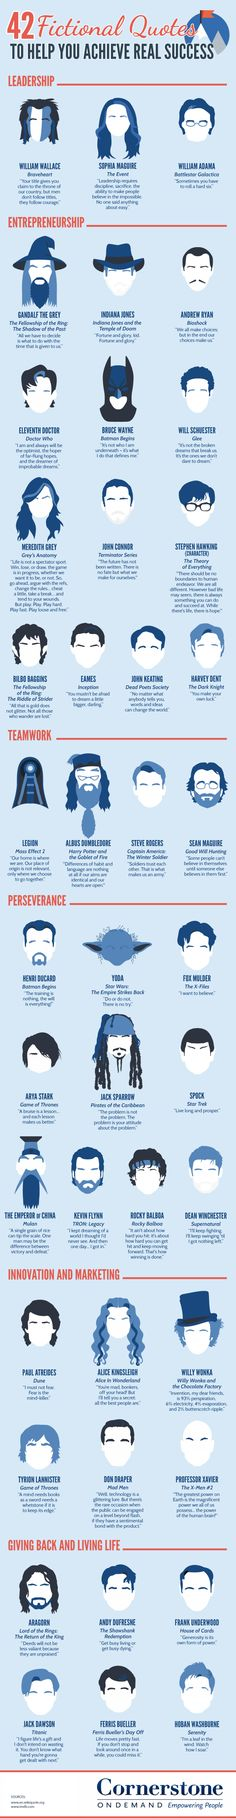 42 Fictional Quotes to Help You Achieve Real Success Infographic